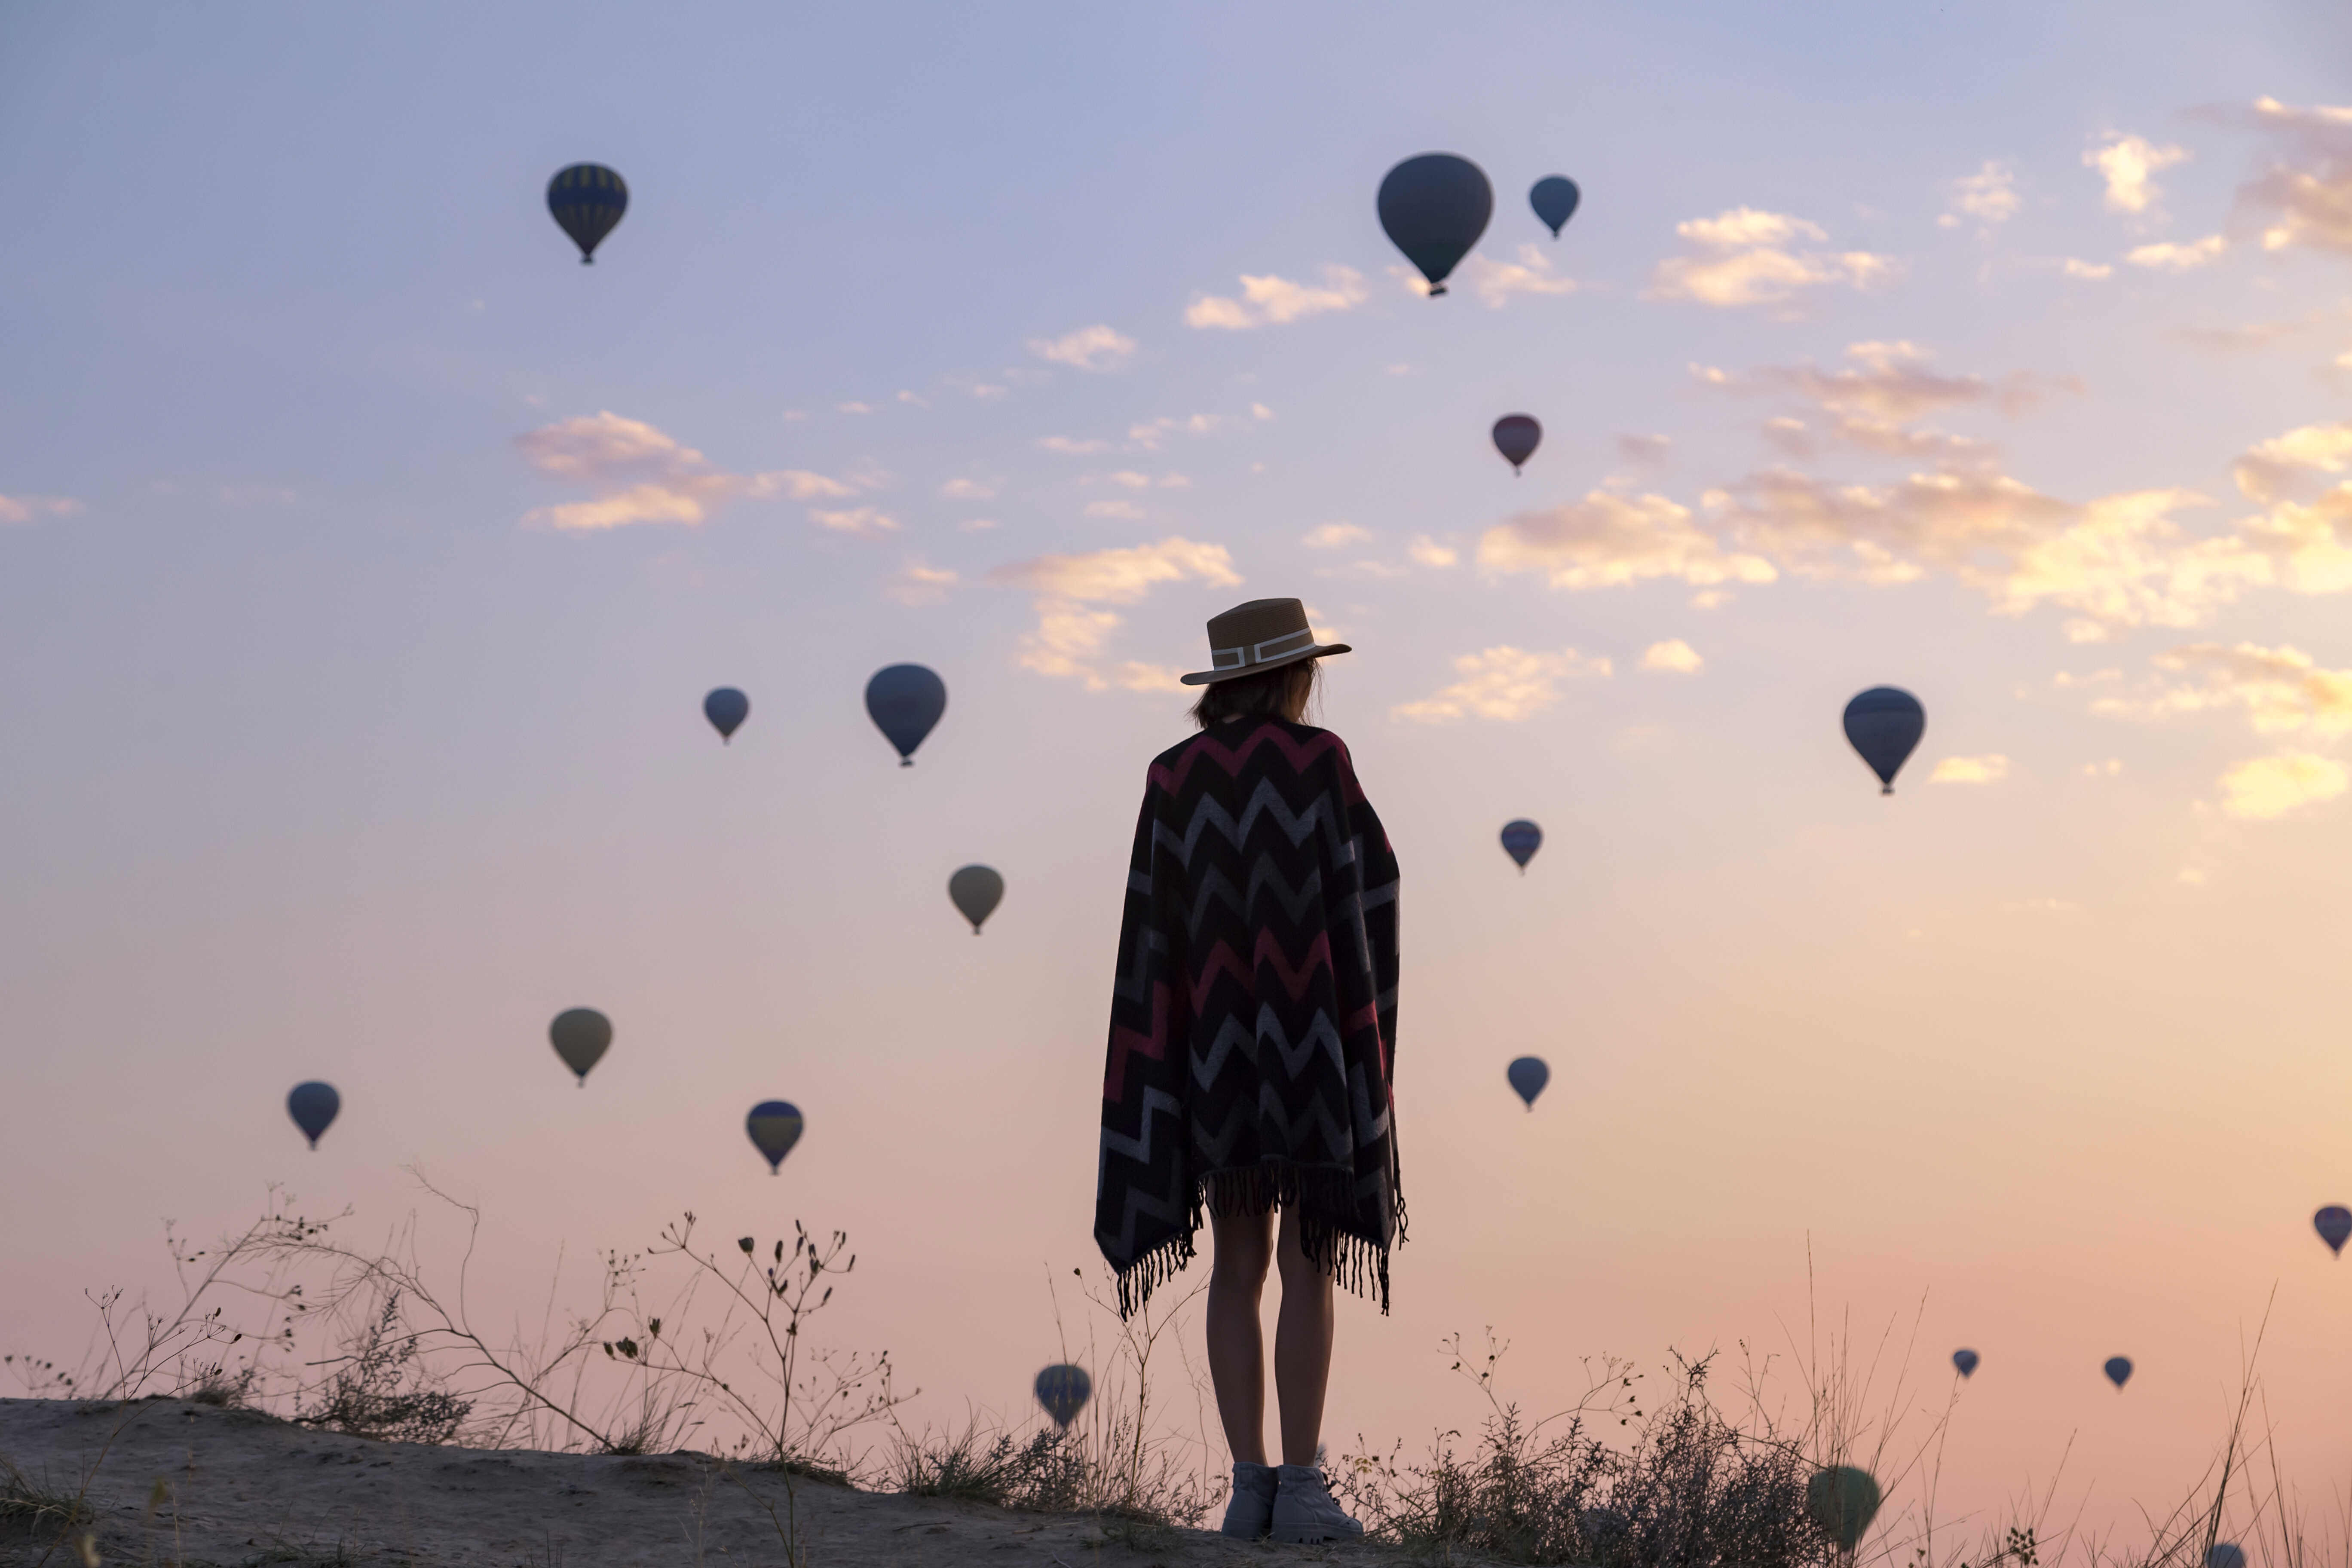 Young woman looking out at hot air balloons in the sky